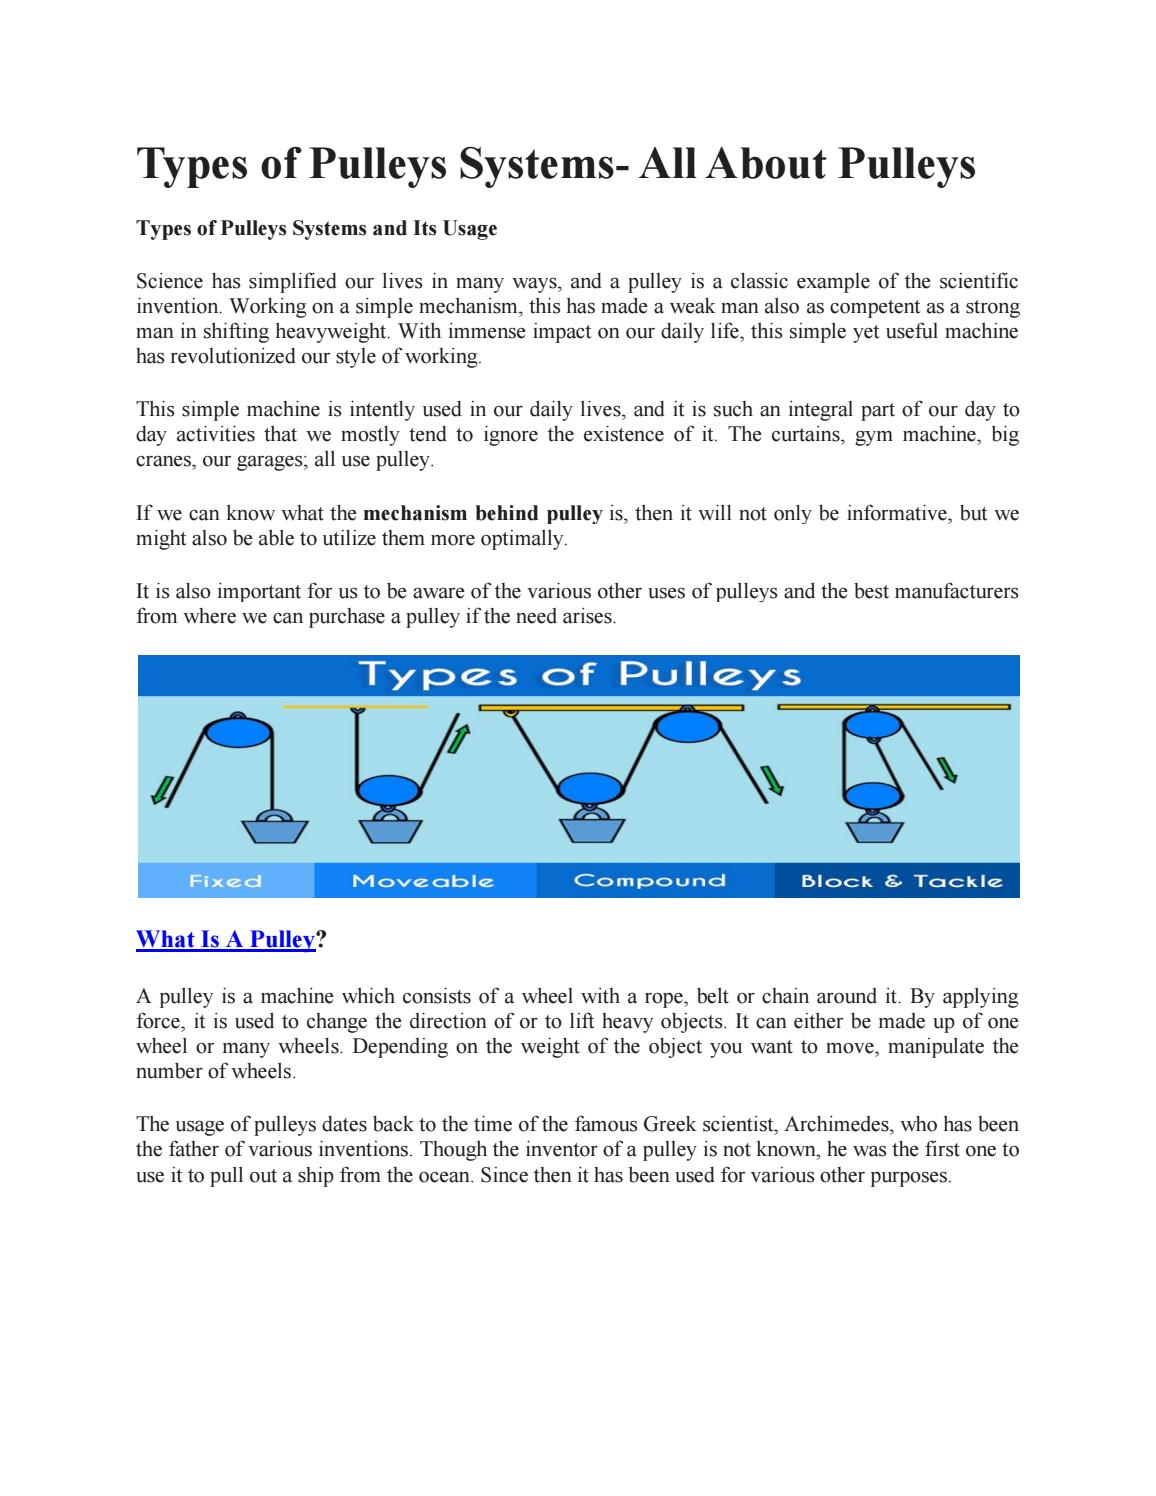 Types of Pulleys Systems- All About Pulleys by dadu